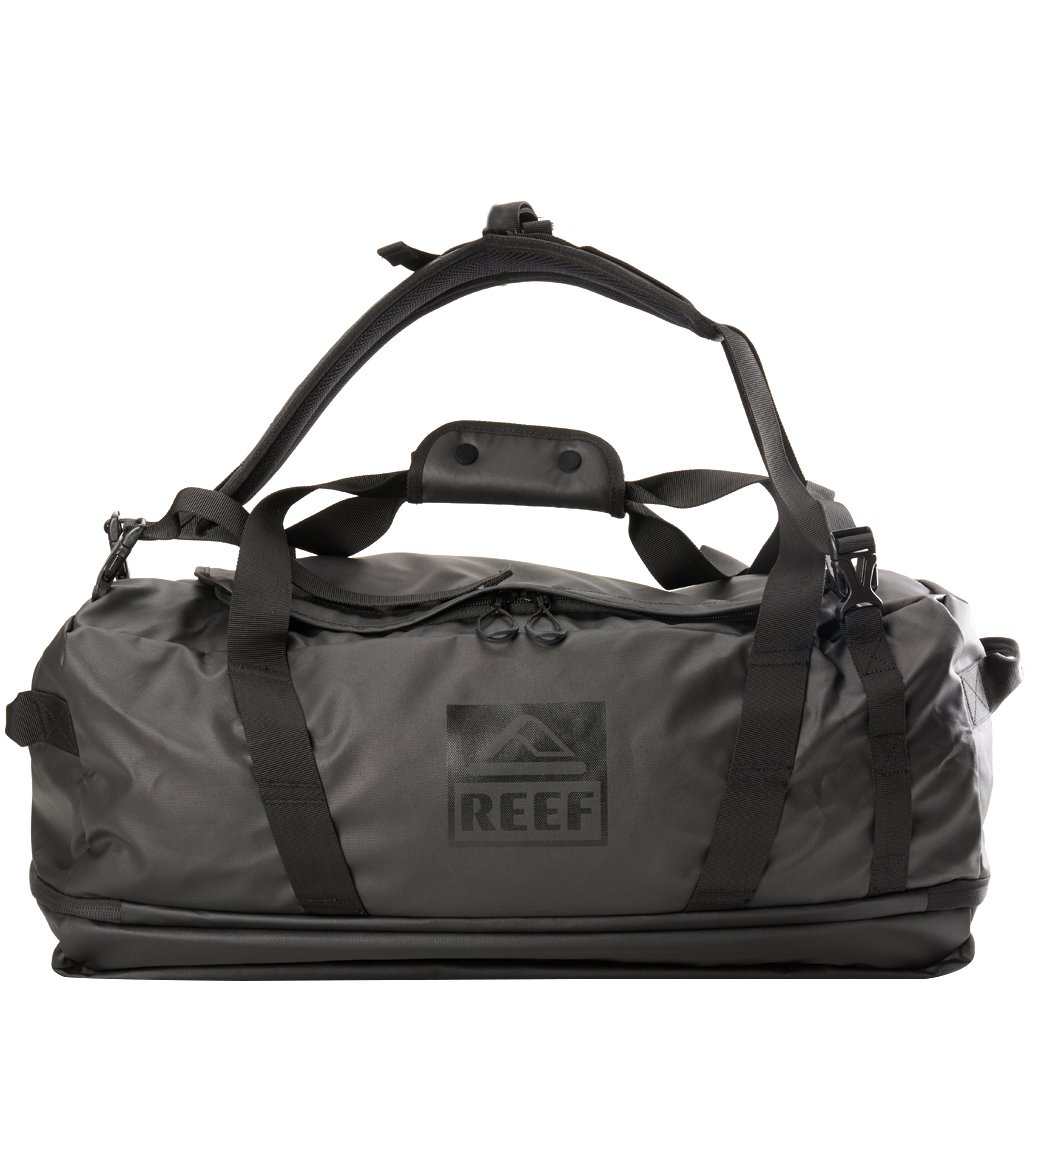 420a1f1877 Reef Duffel 3 Bag at SwimOutlet.com - Free Shipping